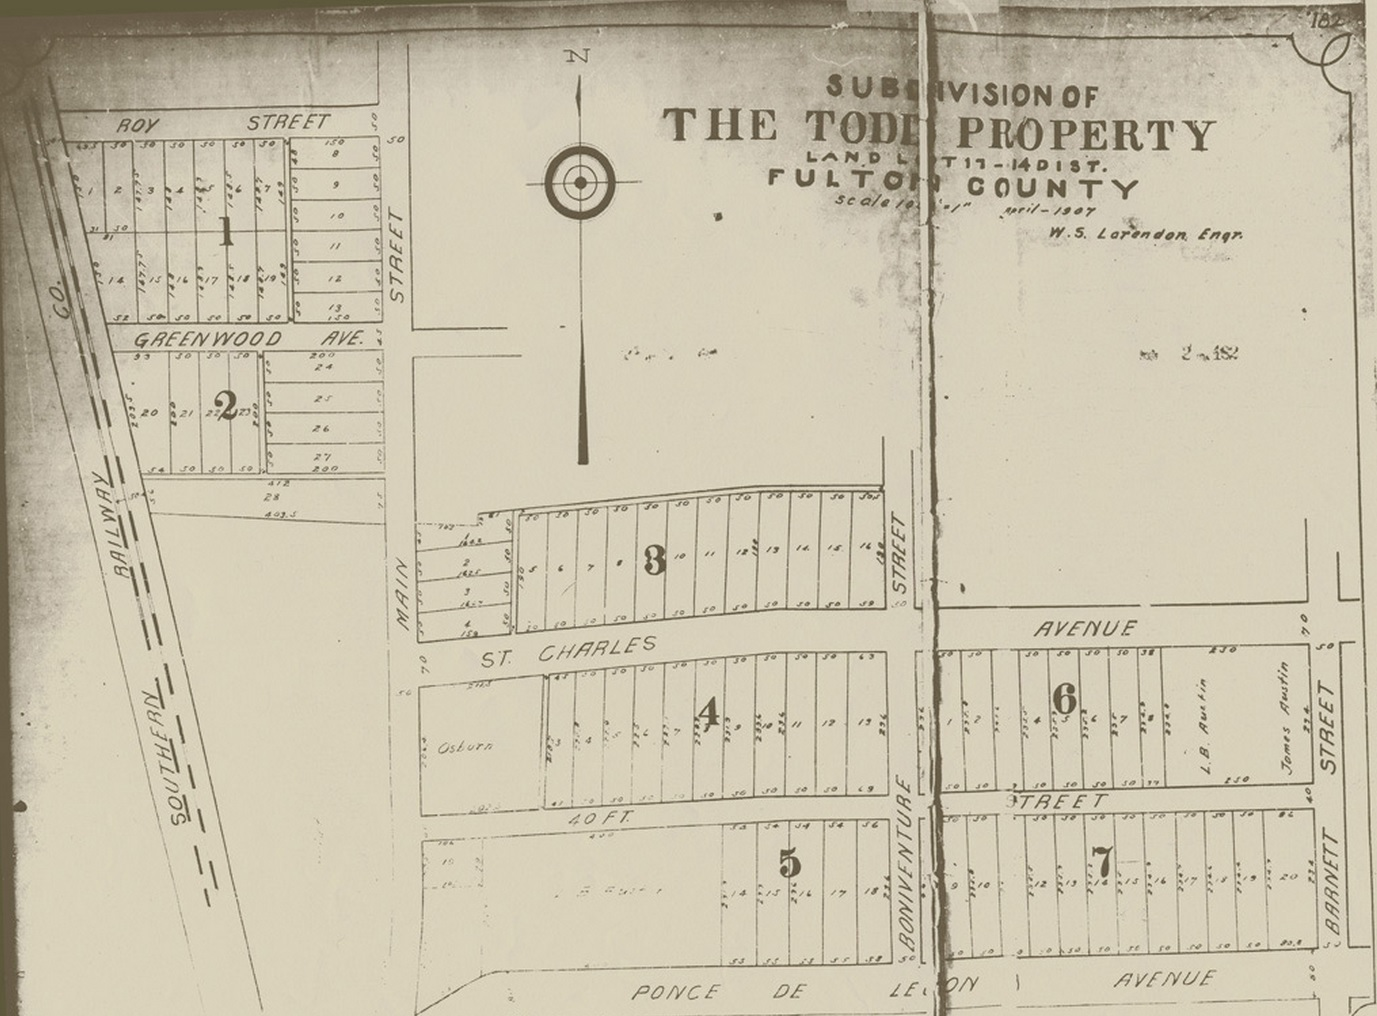 hight resolution of the todd property subdivision development map from april 1907 virginia highland civic association